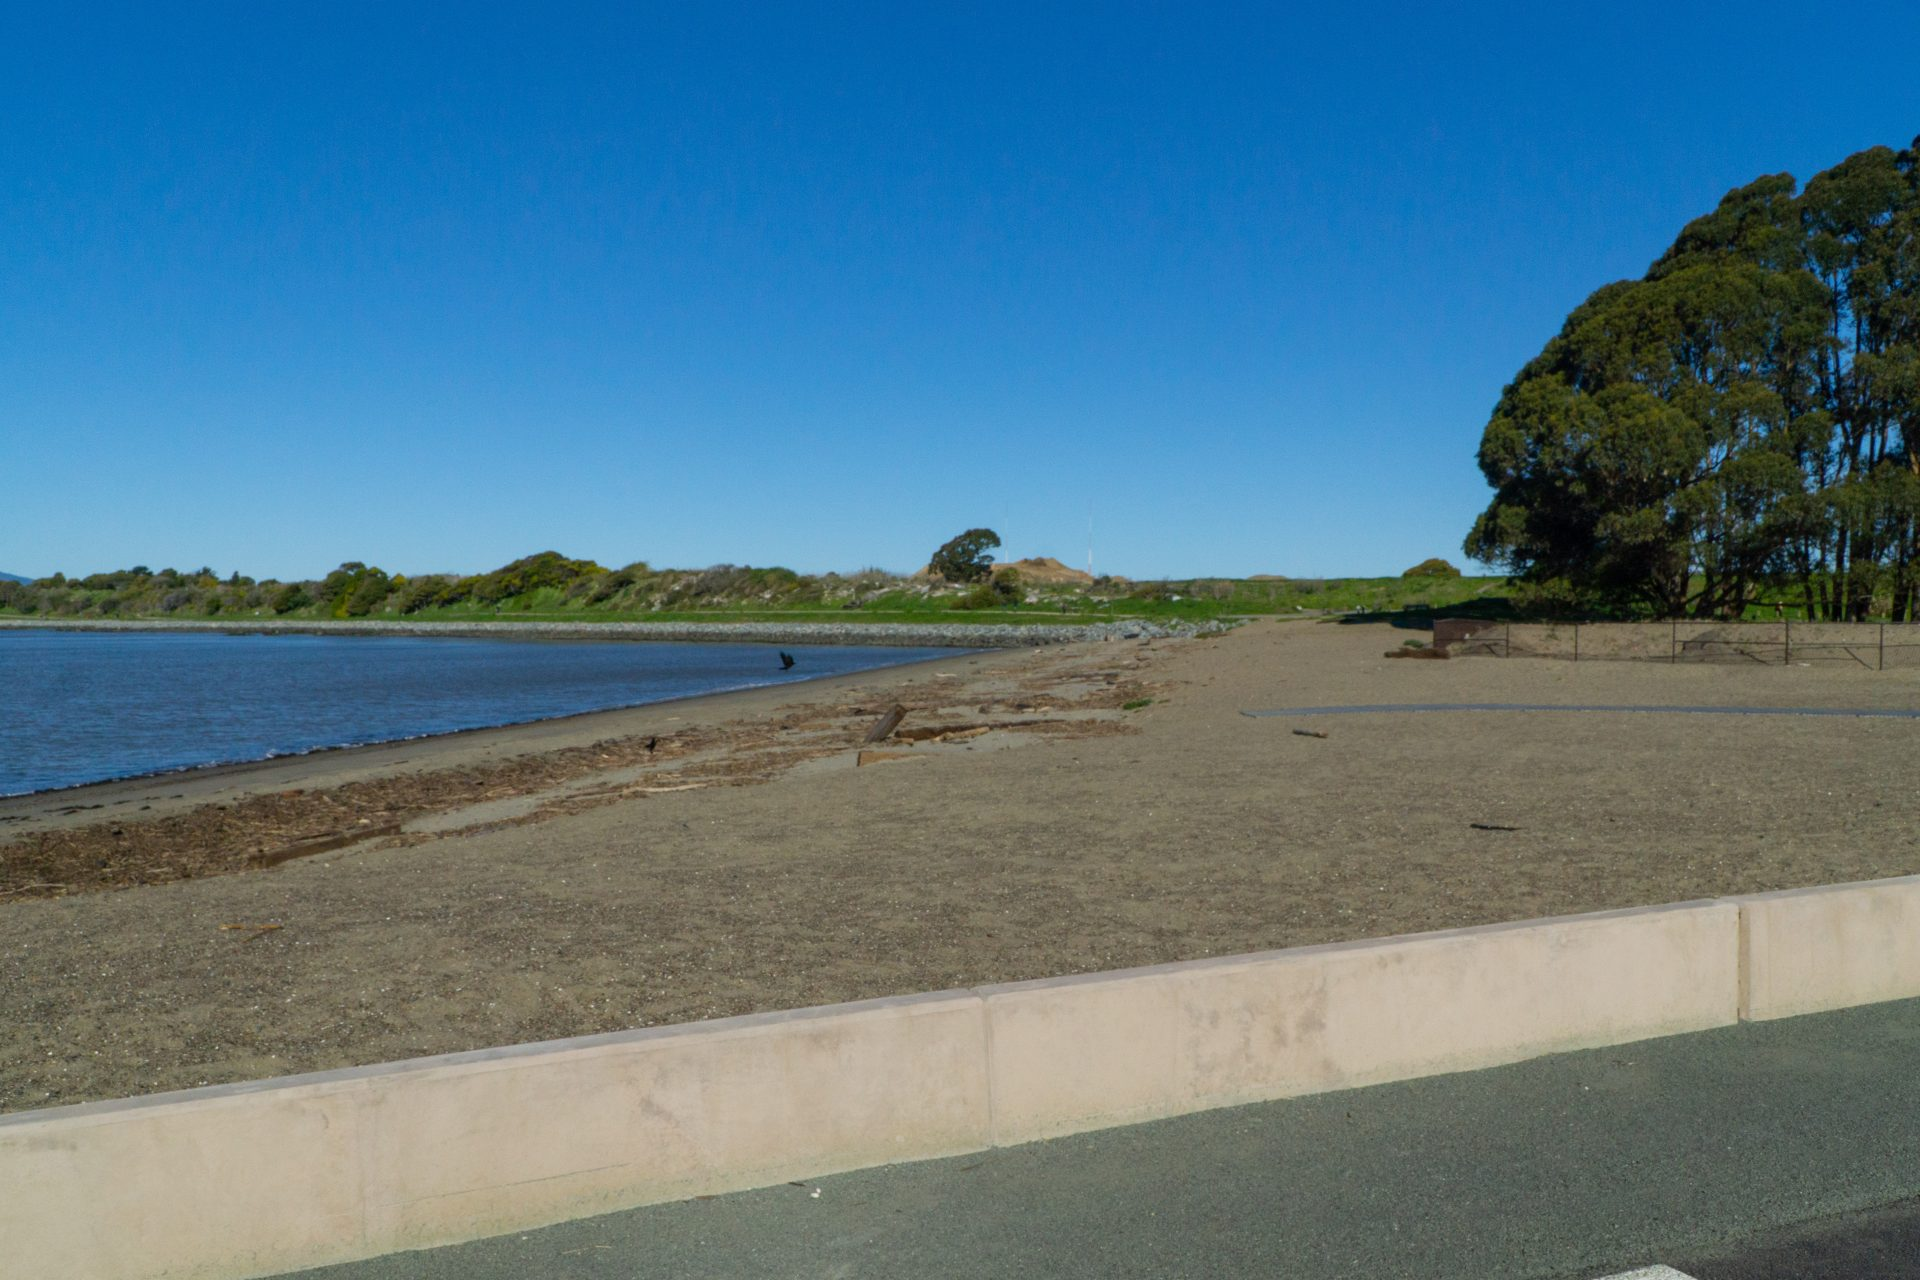 concrete wall and sandy beach, bay, green grass and trees